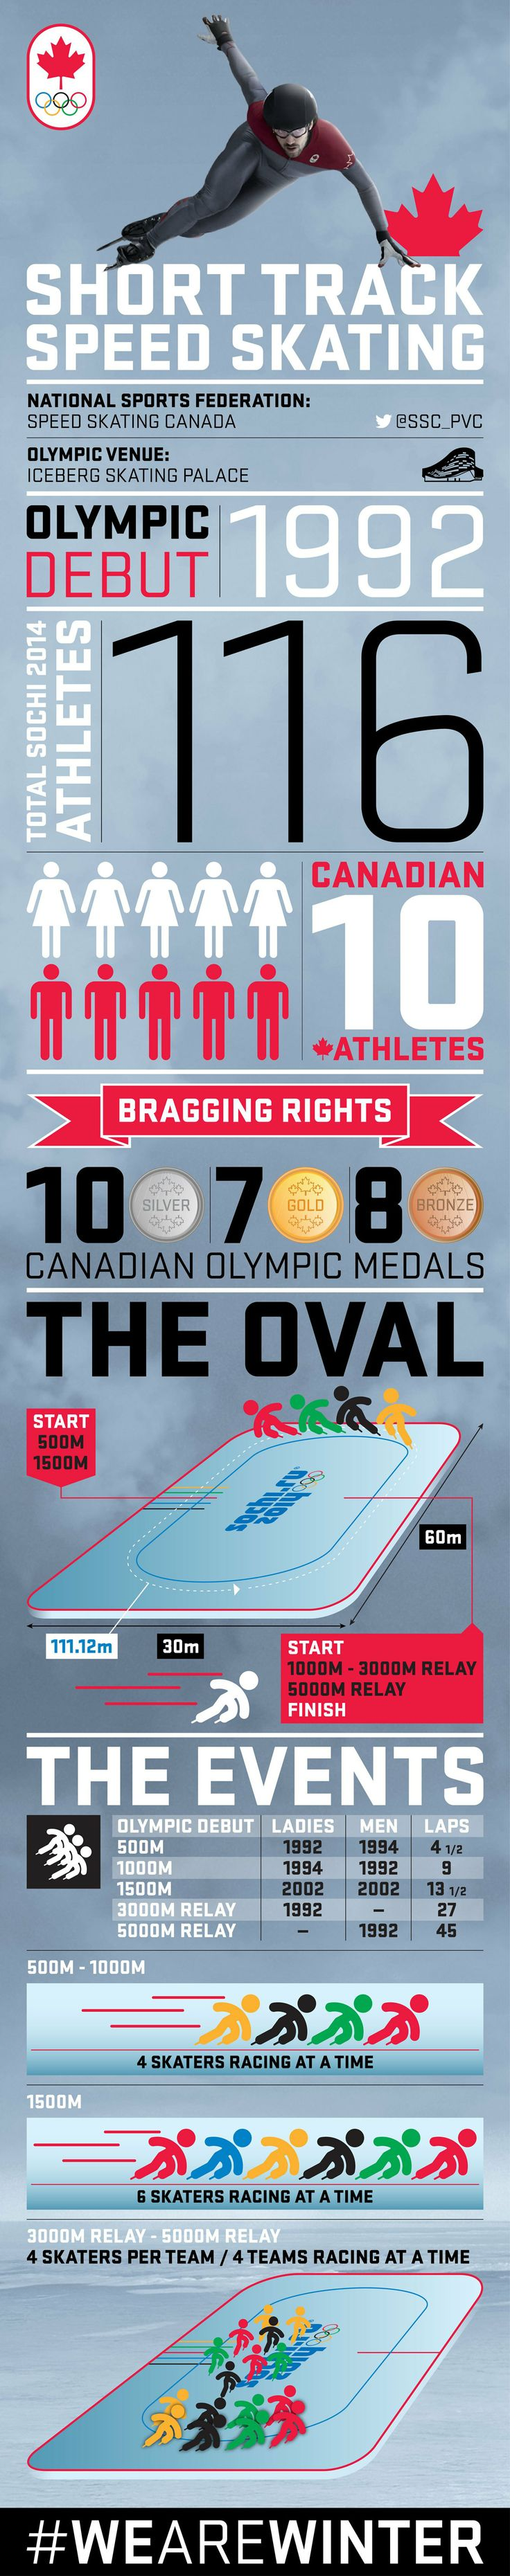 Your guide to Olympic Short Track Speed Skating [INFOGRAPHIC] | Official Canadian Olympic Team Website | Team Canada | 2014 Winter Olympics